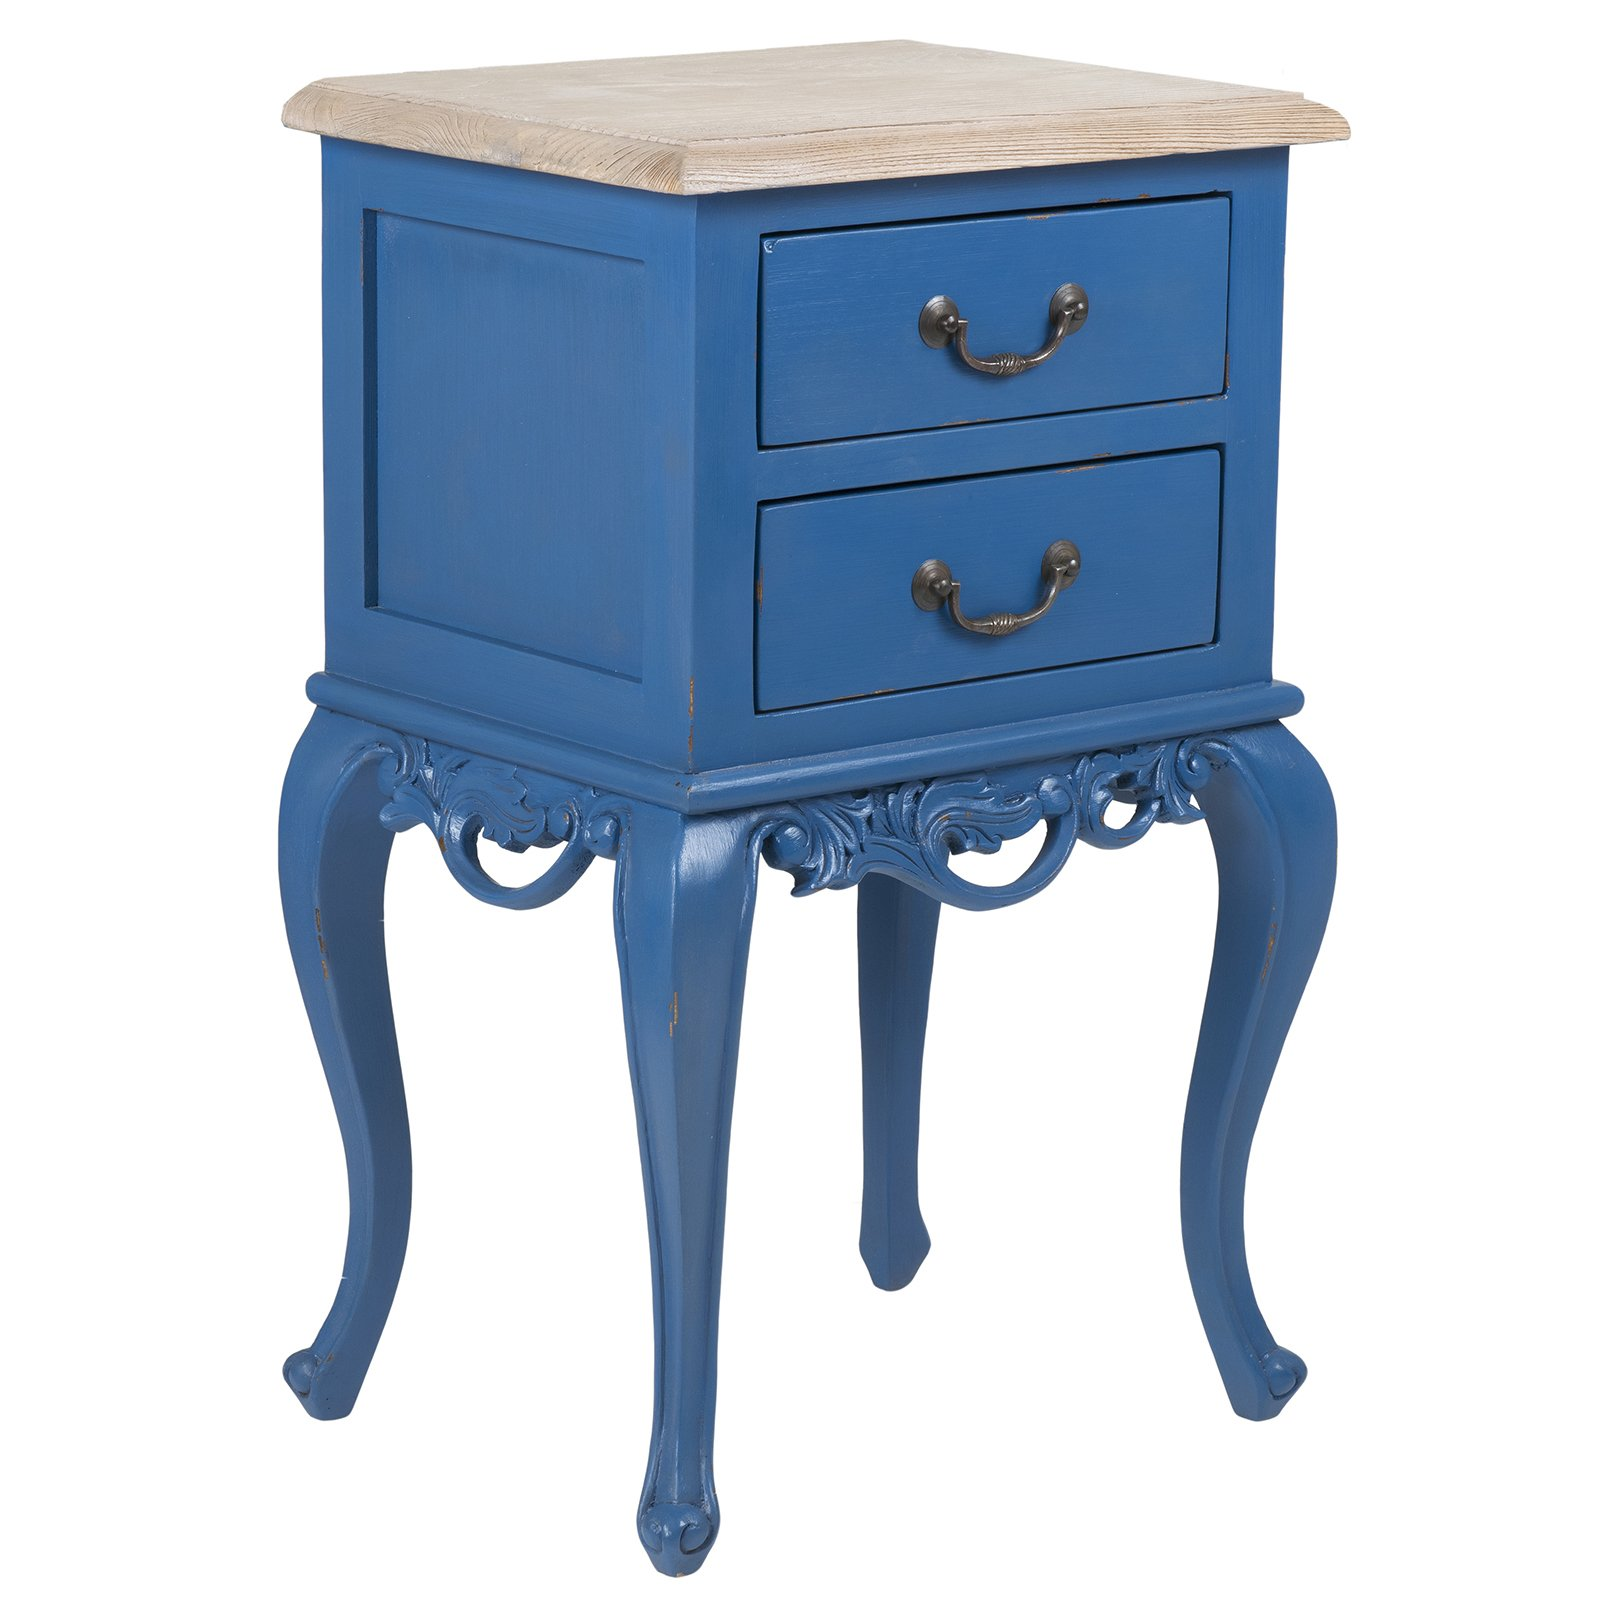 east main herrin blue square traditional teakwood accent mains table teal free shipping today pier one chairs clear plastic console with shelves and drawers pedestal kitchen